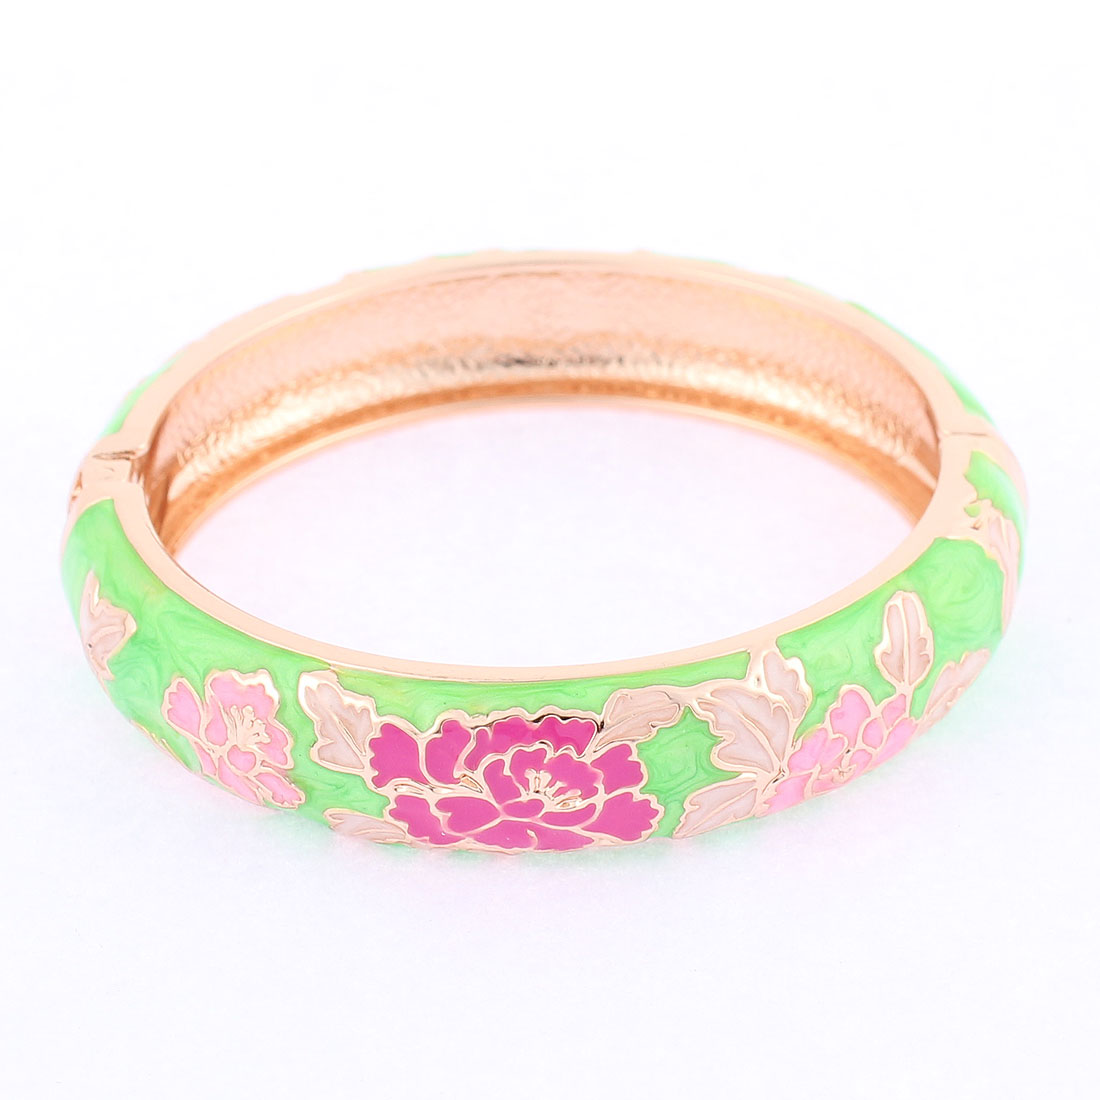 Lady Wrist Wear Spring Closure Flower Enamel Round Bracelet Bangle Green